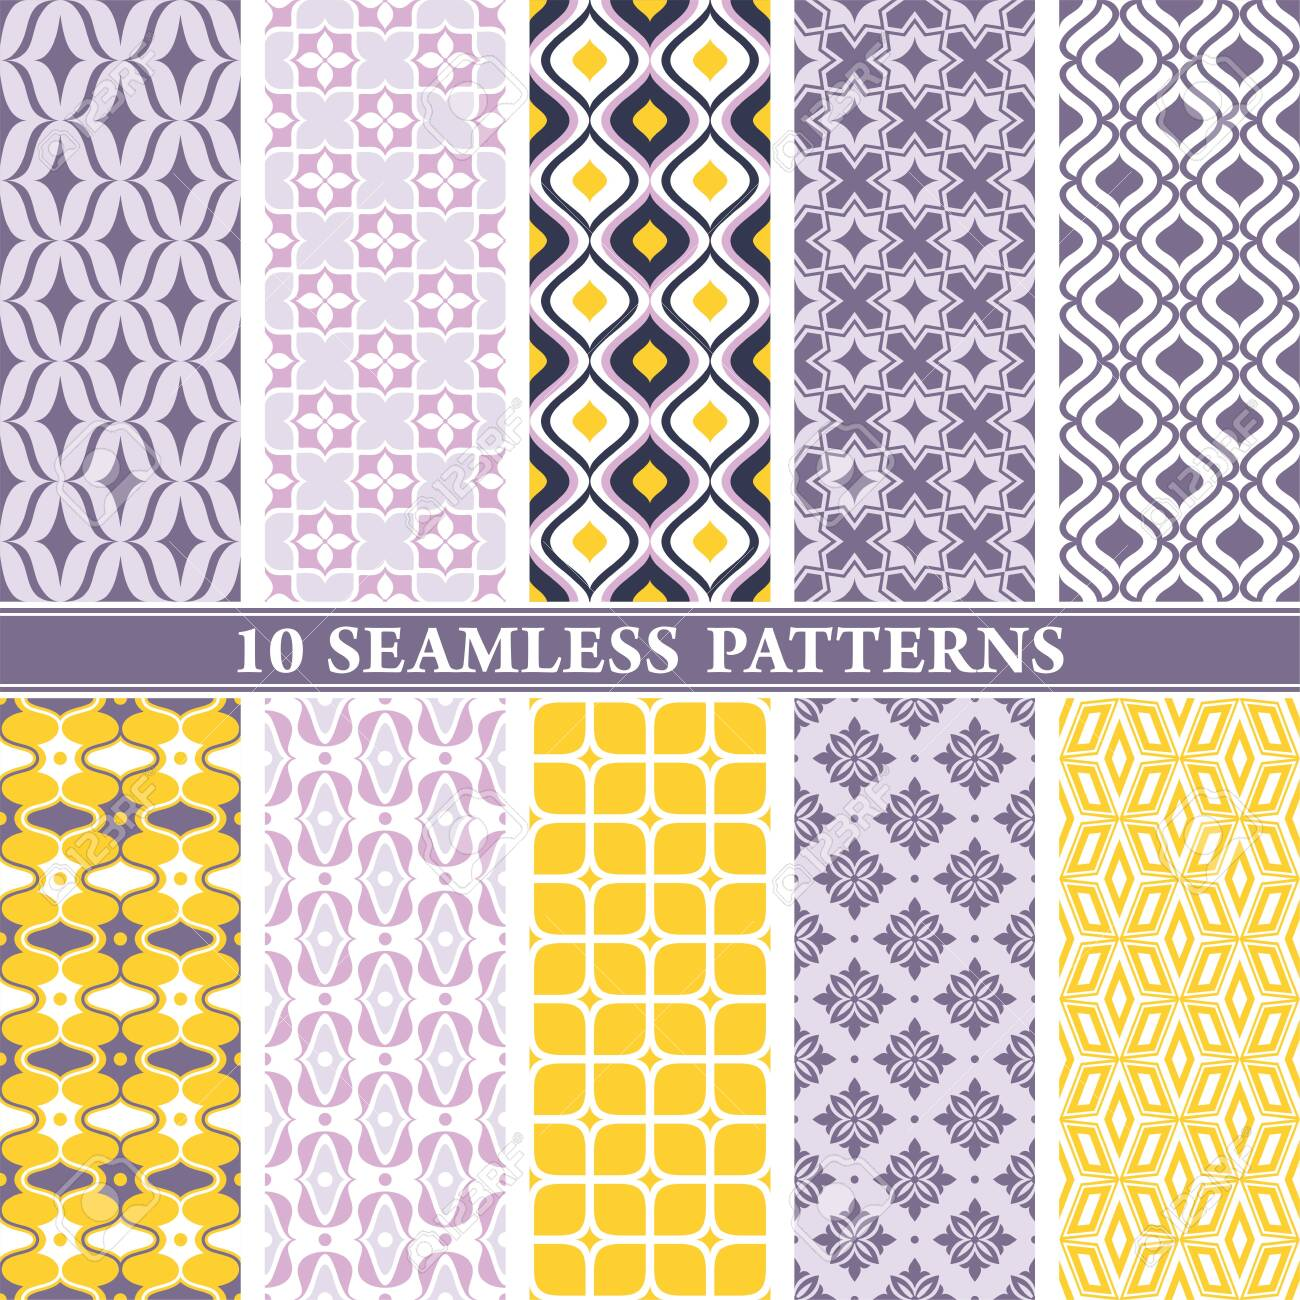 Seamless wallpaper patterns. Vintage and modern color background with geometric and floral elements. Vector illustration. - 151097785